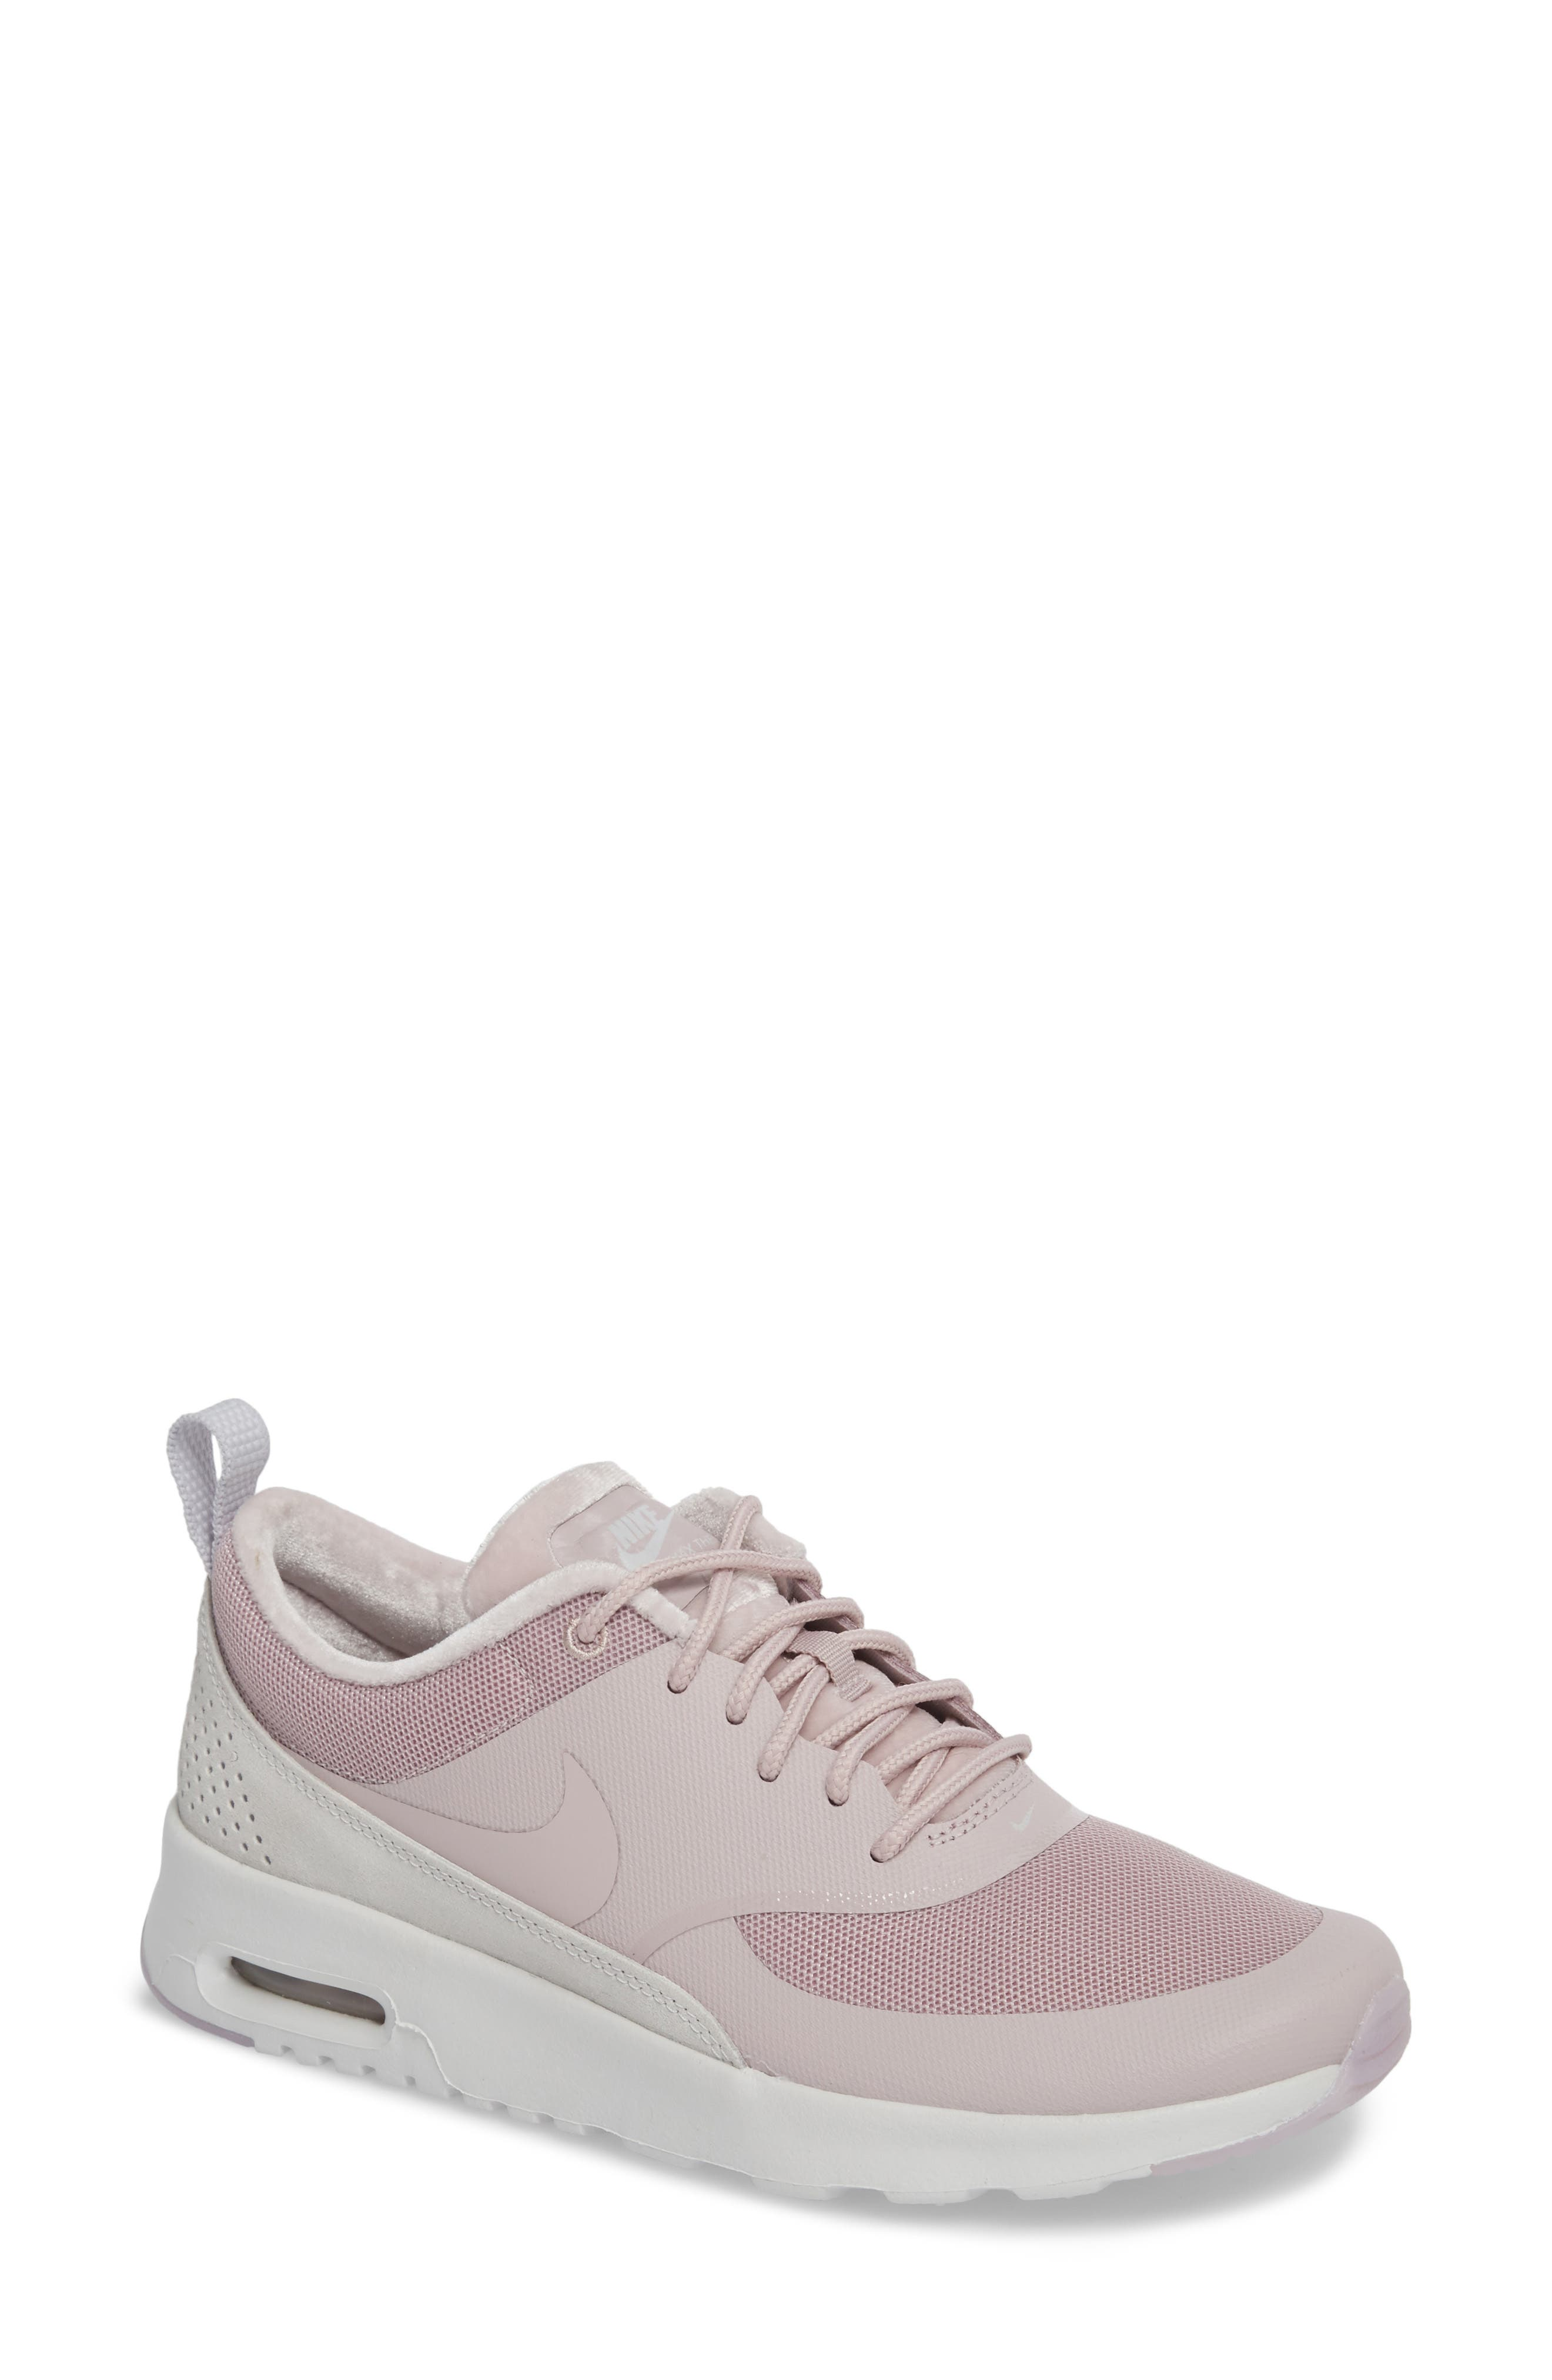 Air Max Thea LX Sneaker,                             Main thumbnail 1, color,                             Particle Rose/ Particle Rose